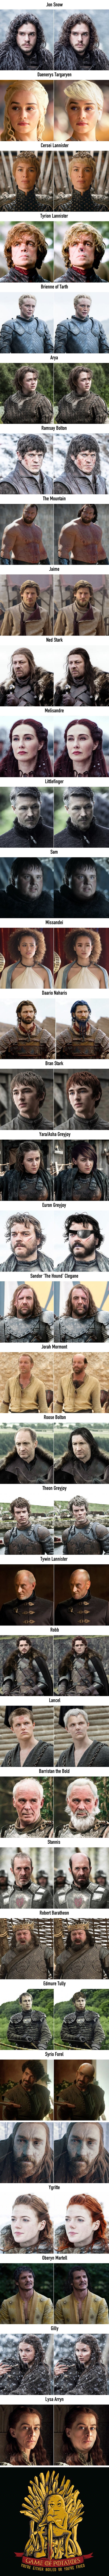 How GoT Characters Should Have Looked Like According To The Books